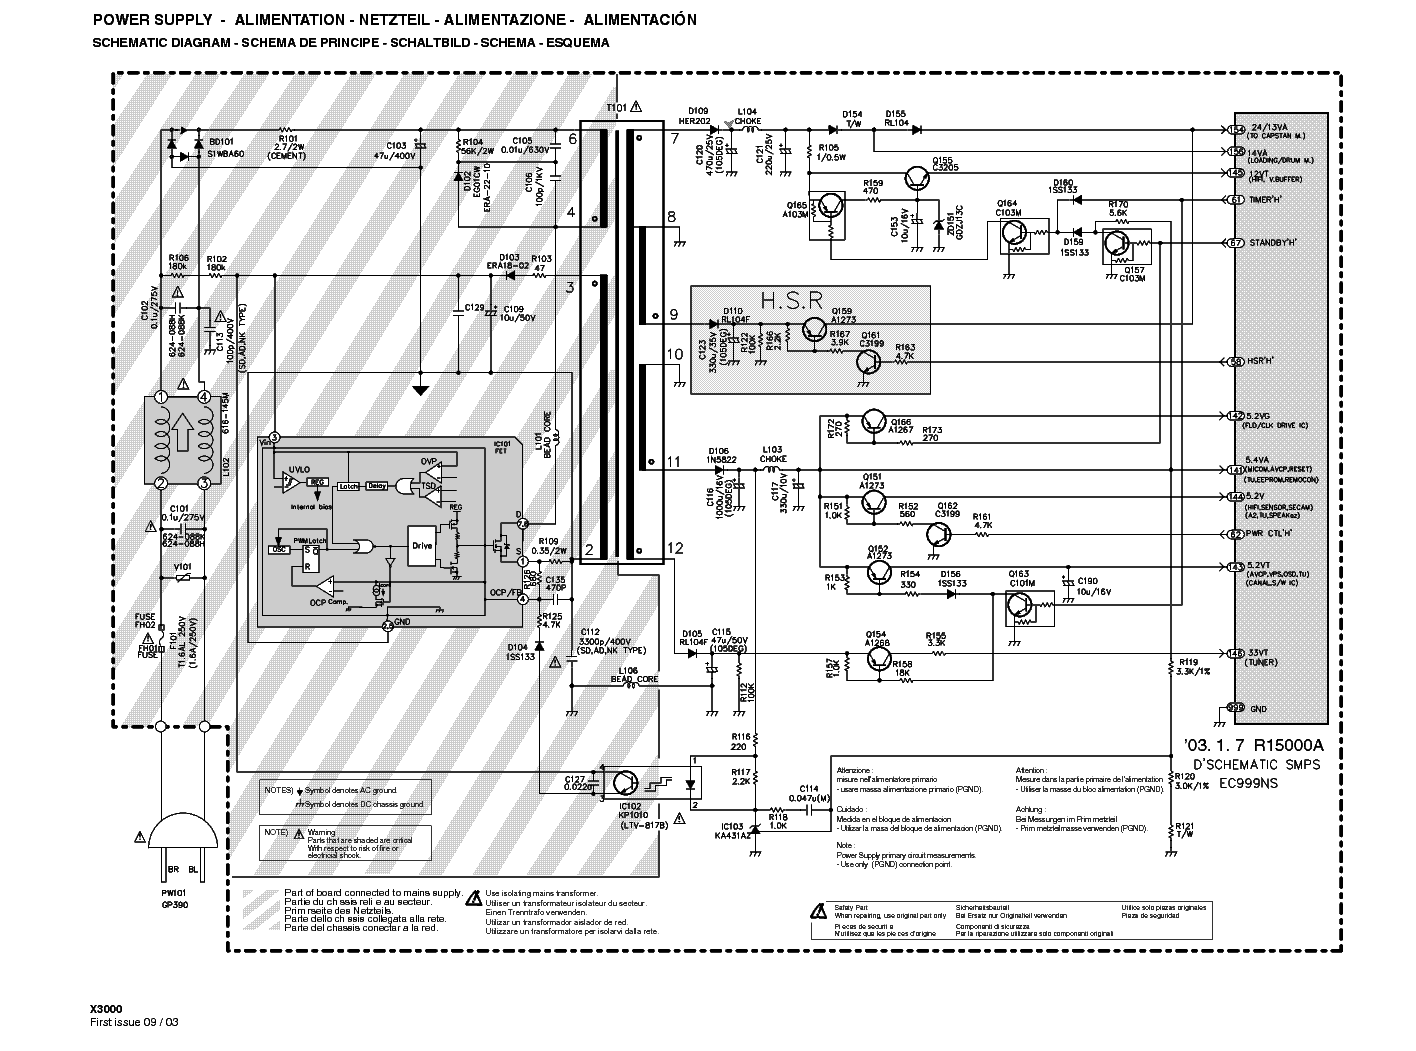 Outstanding Smps Power Supply Schematic Frieze - Wiring Standart ...